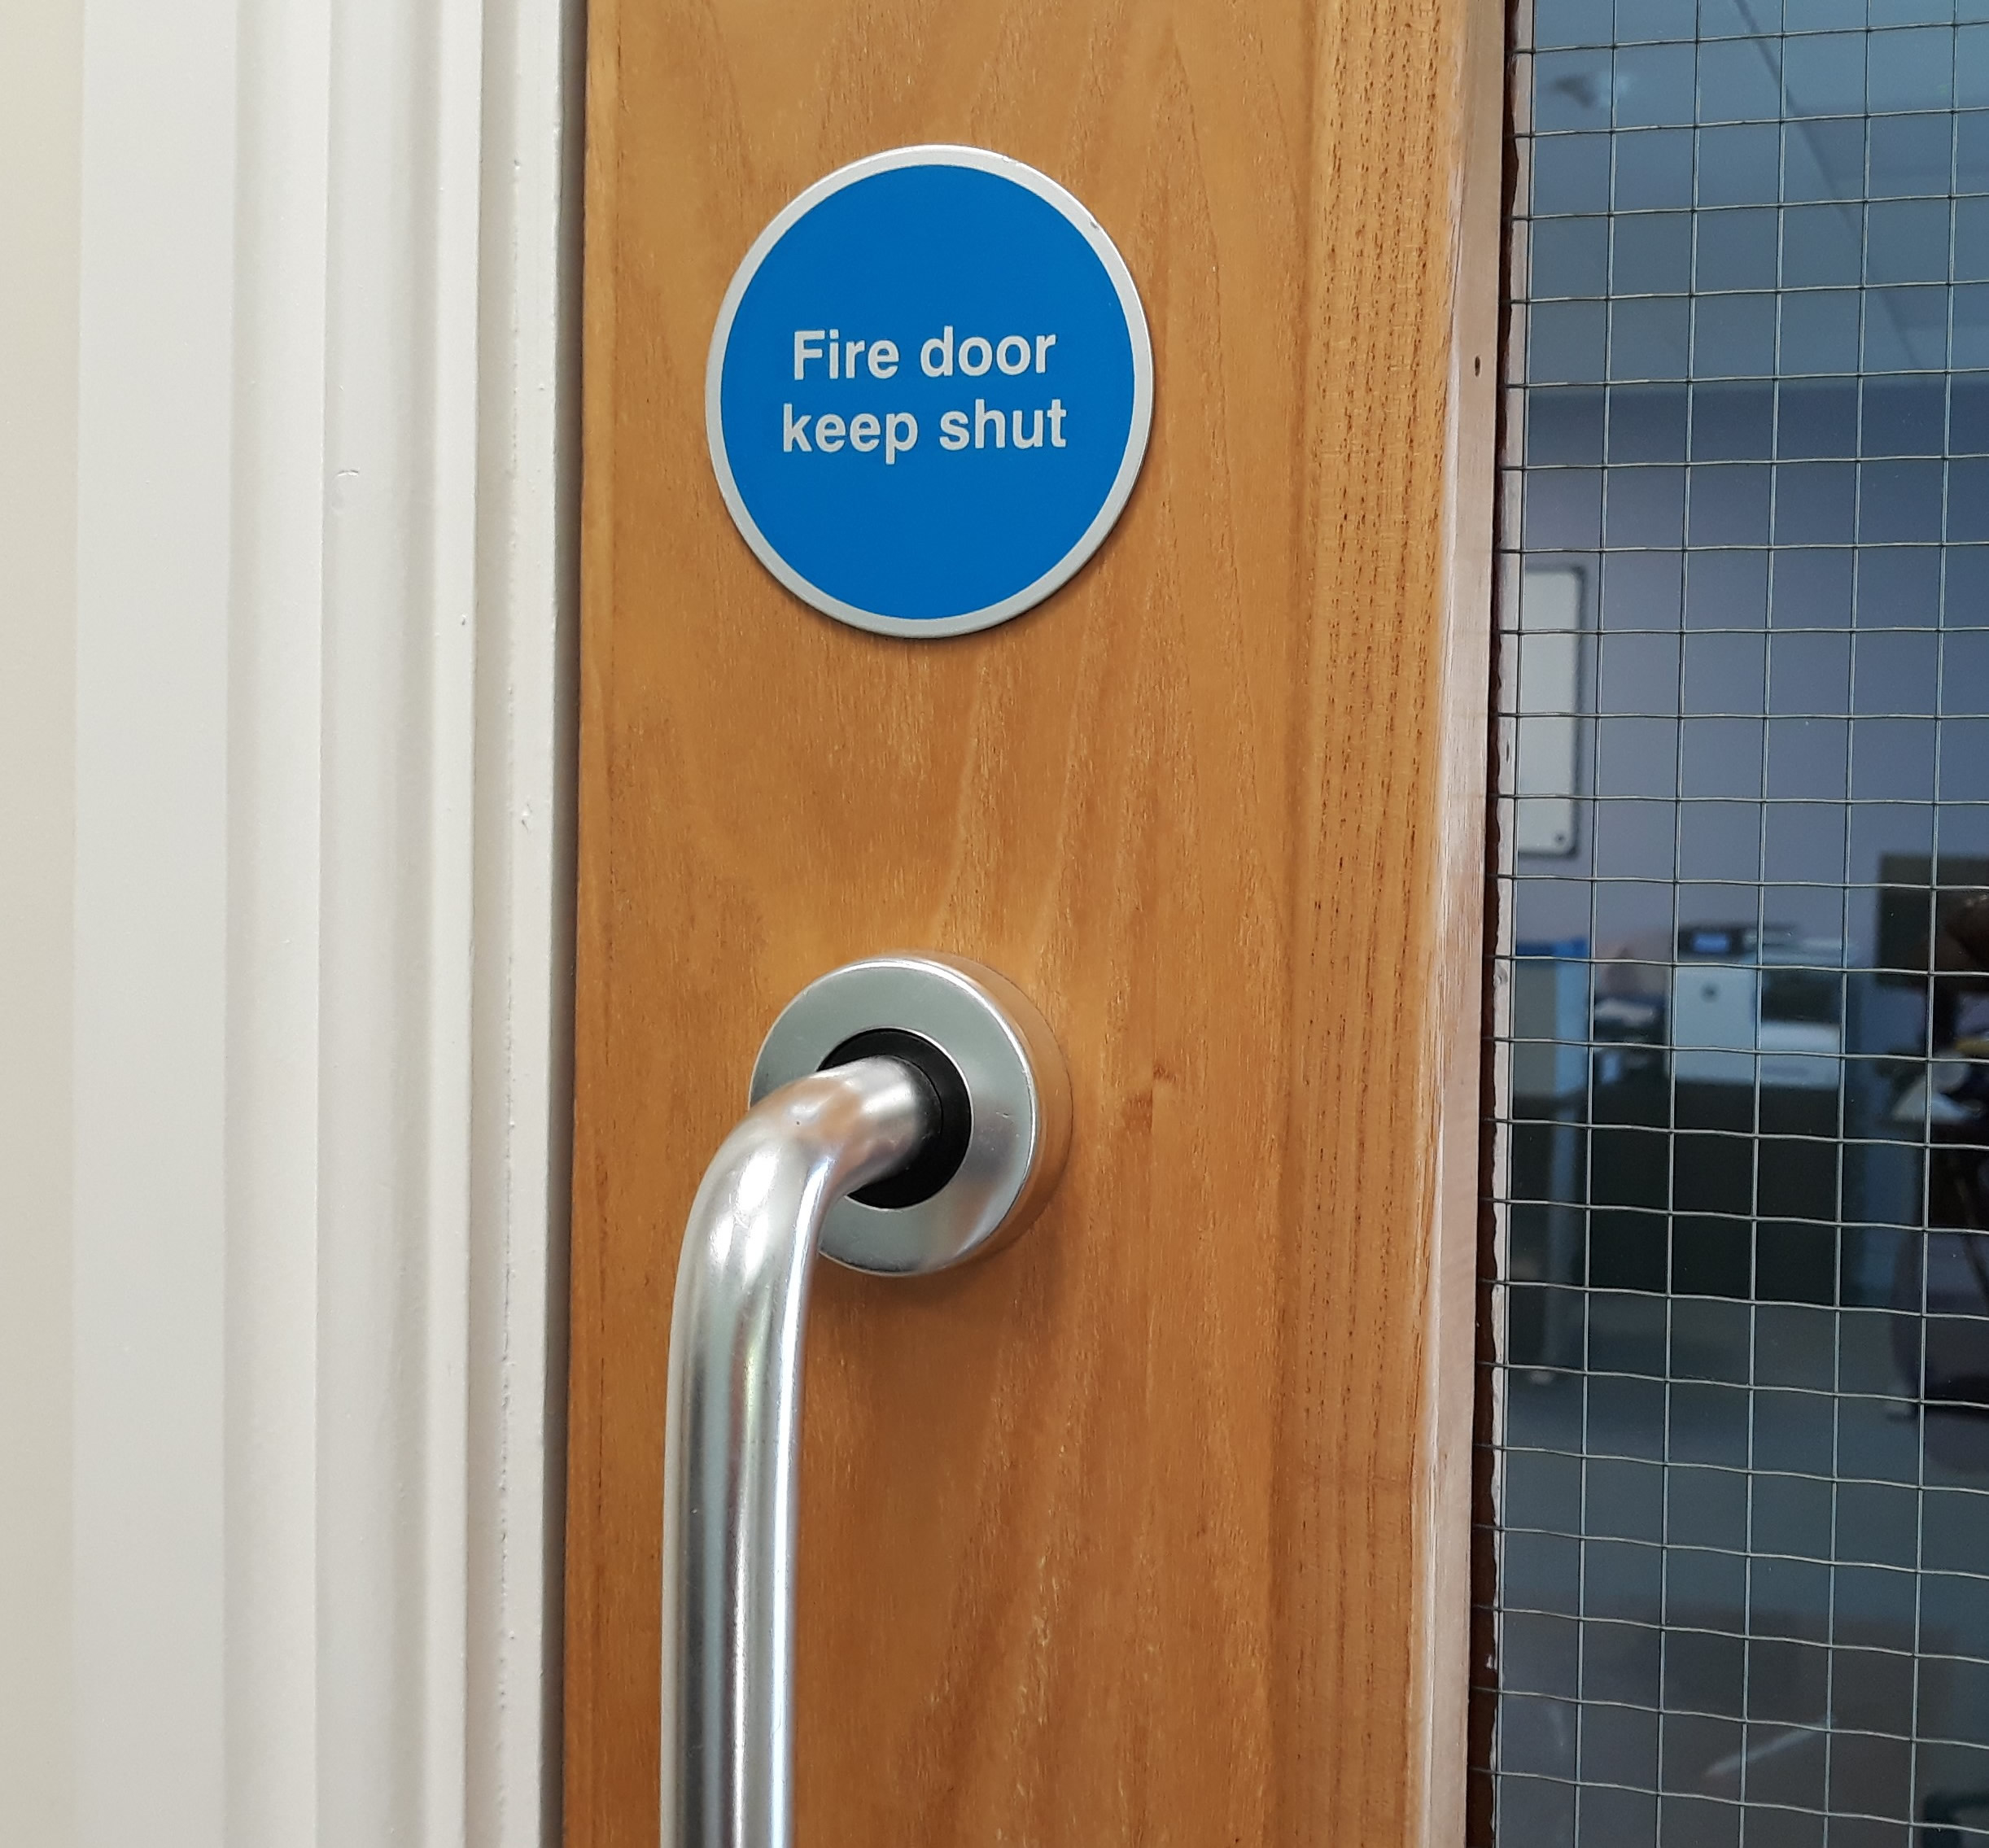 Fire Doors Common Queries From Our Fire Safety Forum Safelincs Blog